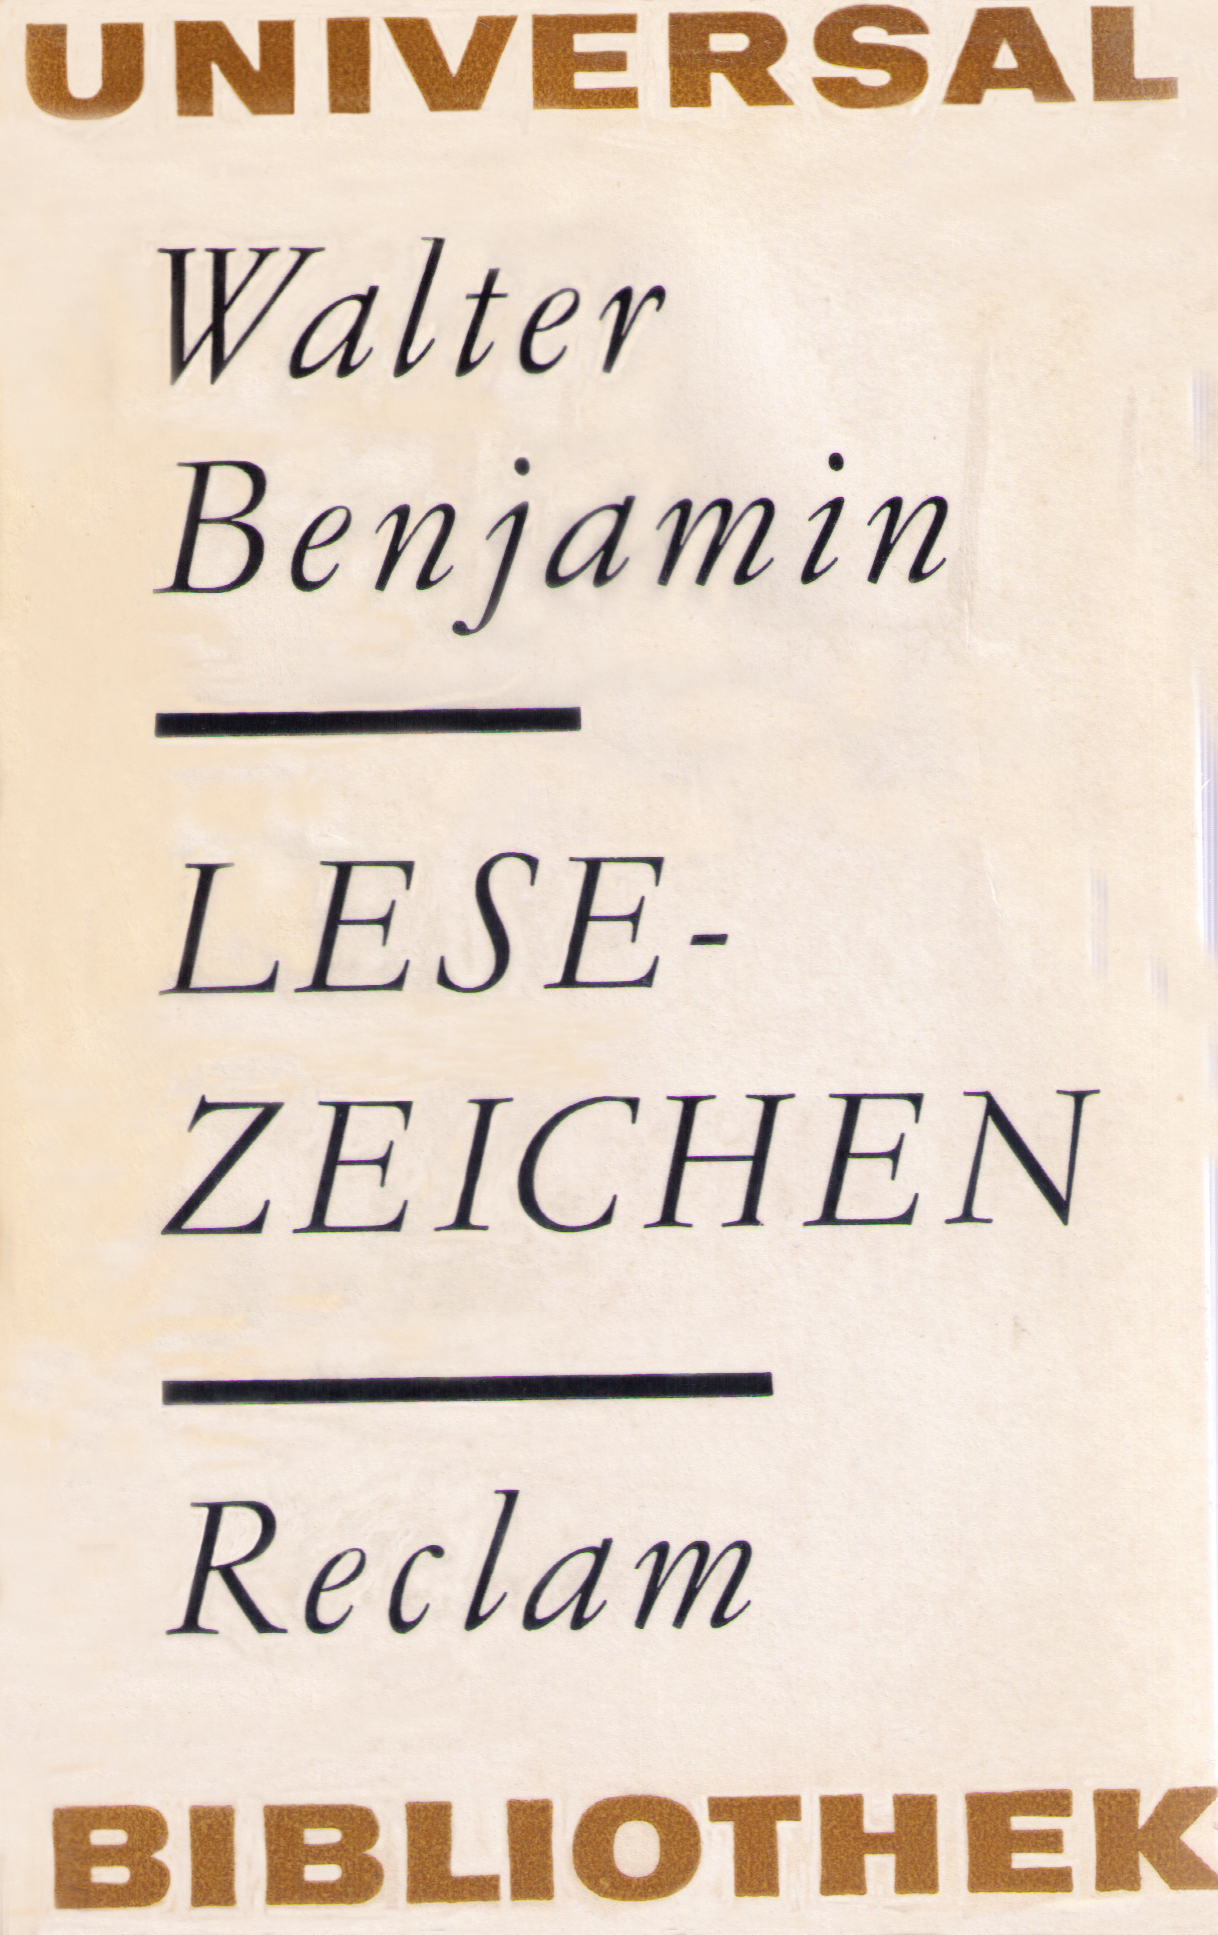 walter benjamin essay on collecting Two new books on walter benjamin that see the highest form of political thinking in the critique of political thinking itself.